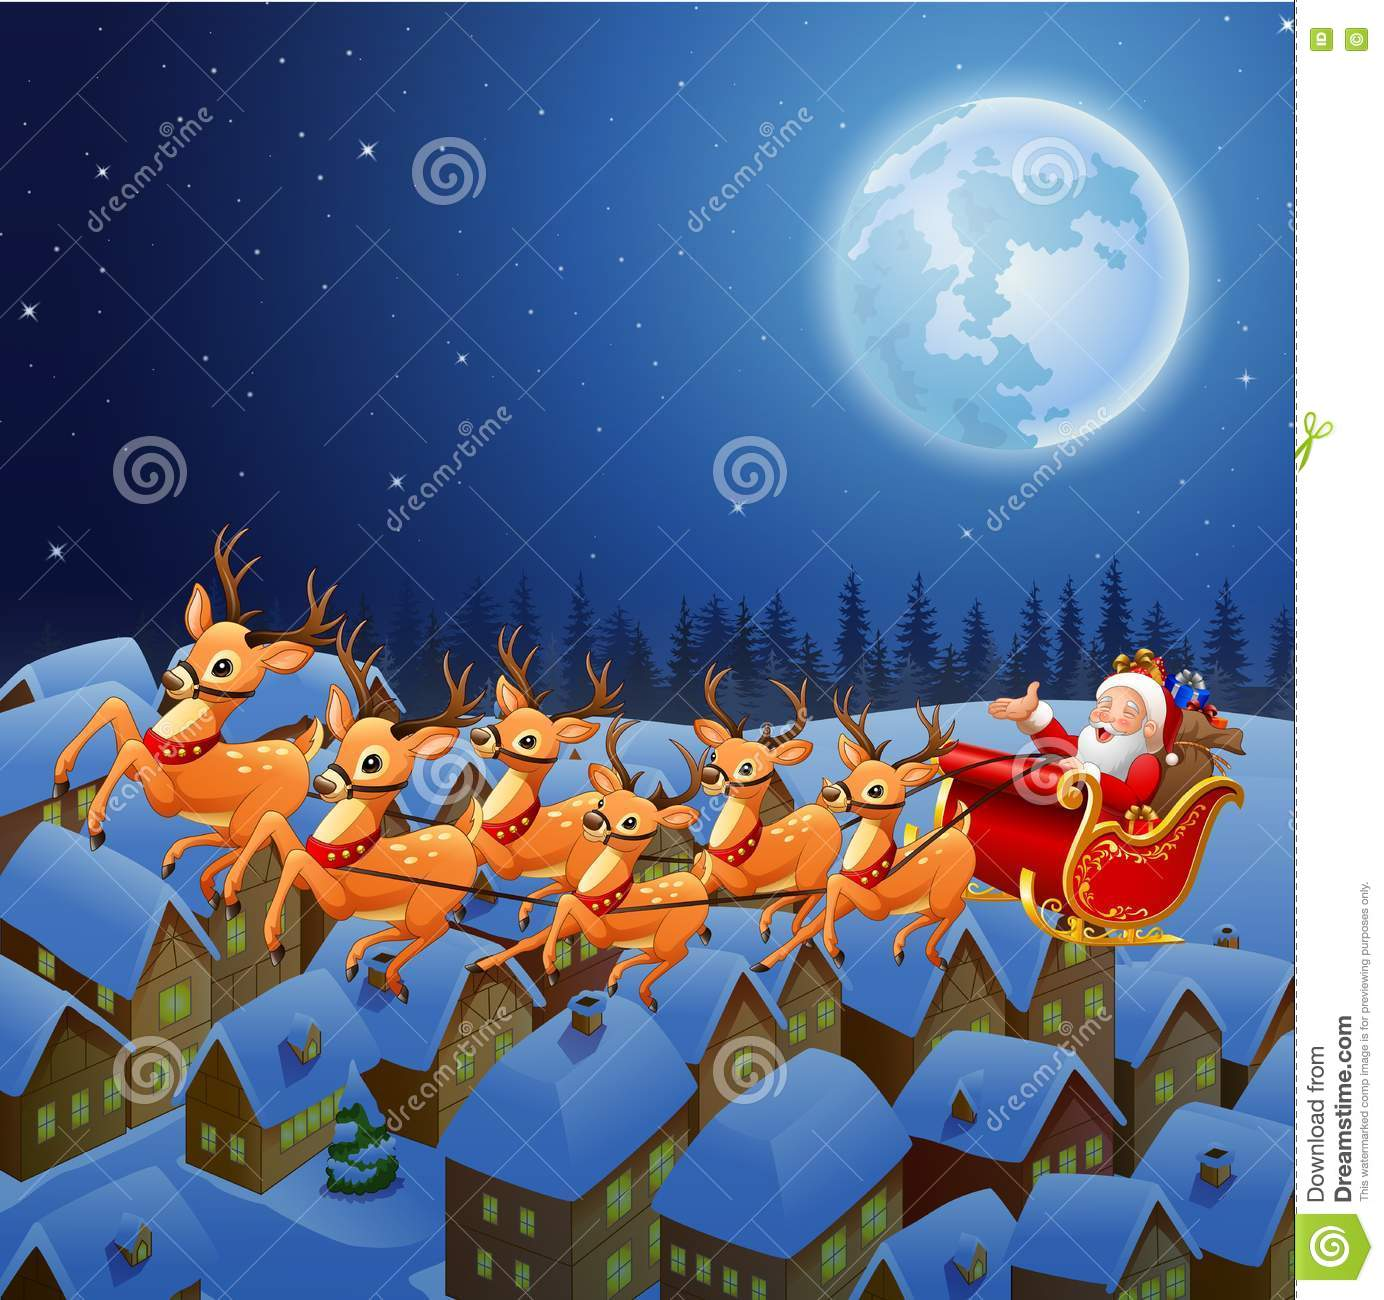 santa claus riding his reindeer sleigh flying in the sky